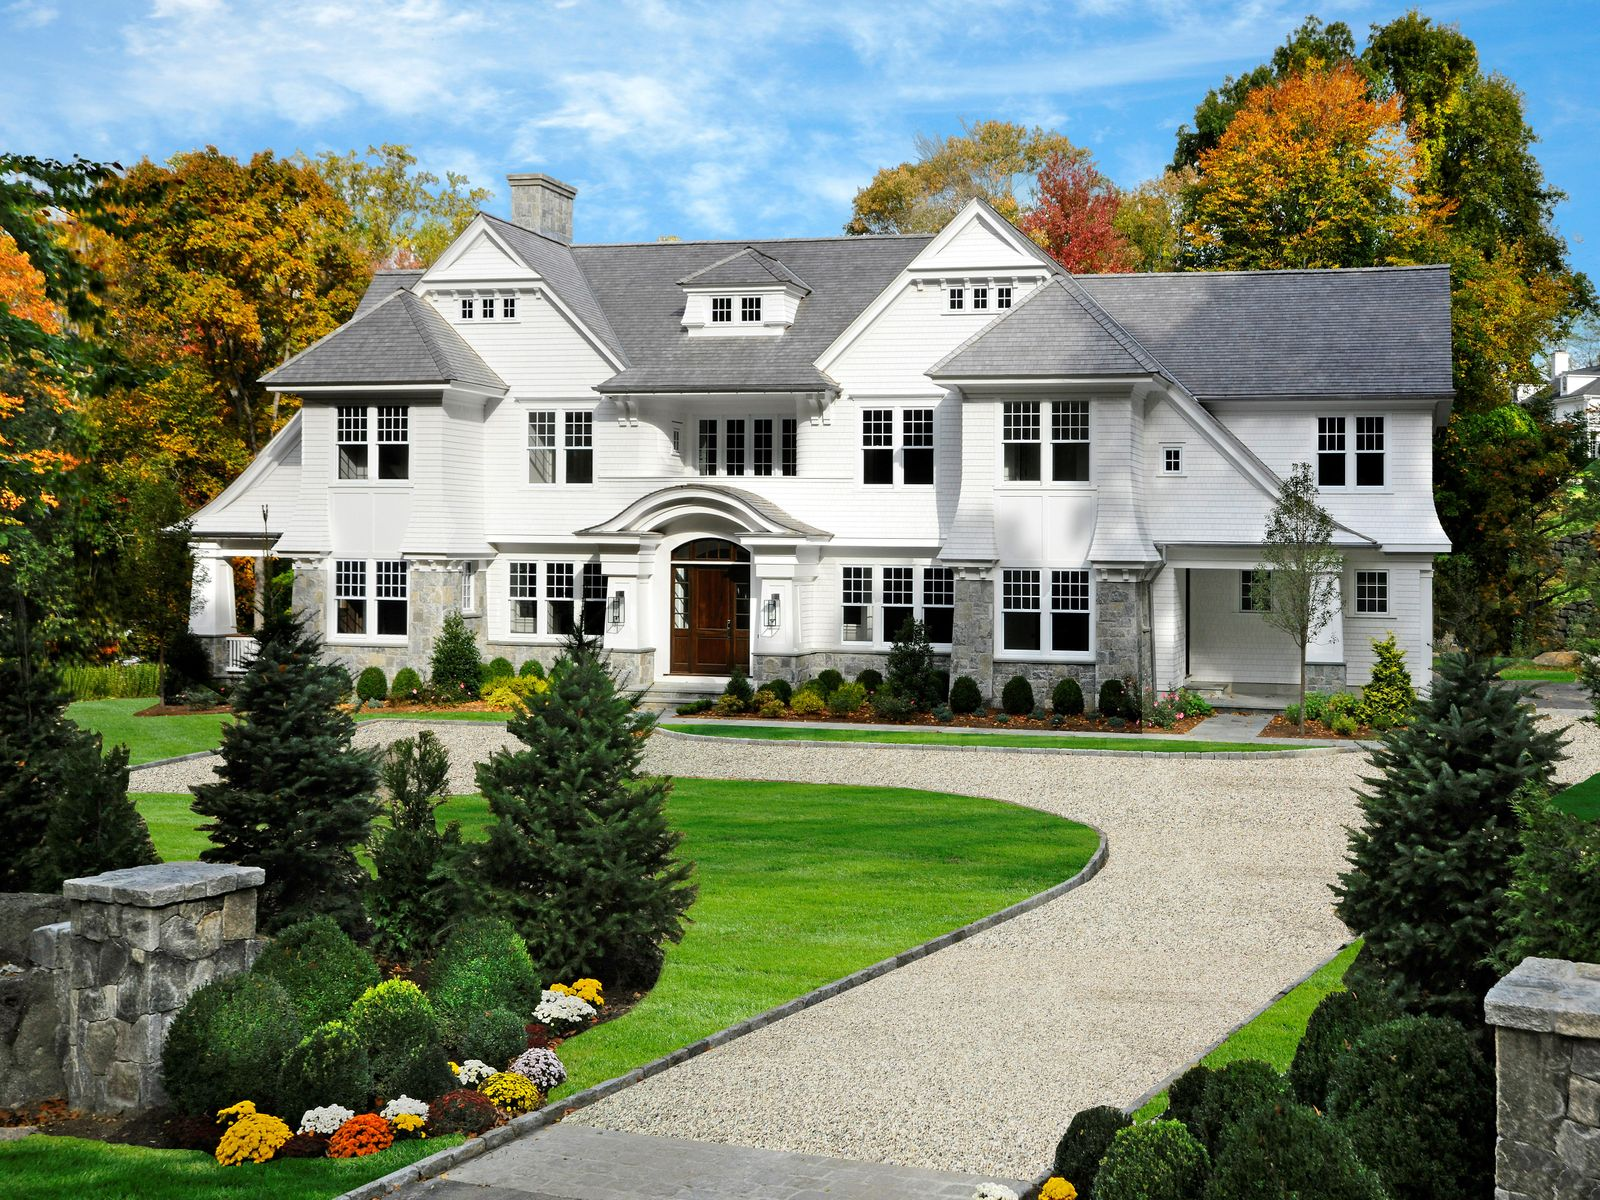 New In-Town Shingle Style, Greenwich CT Single Family Home - Greenwich Real Estate